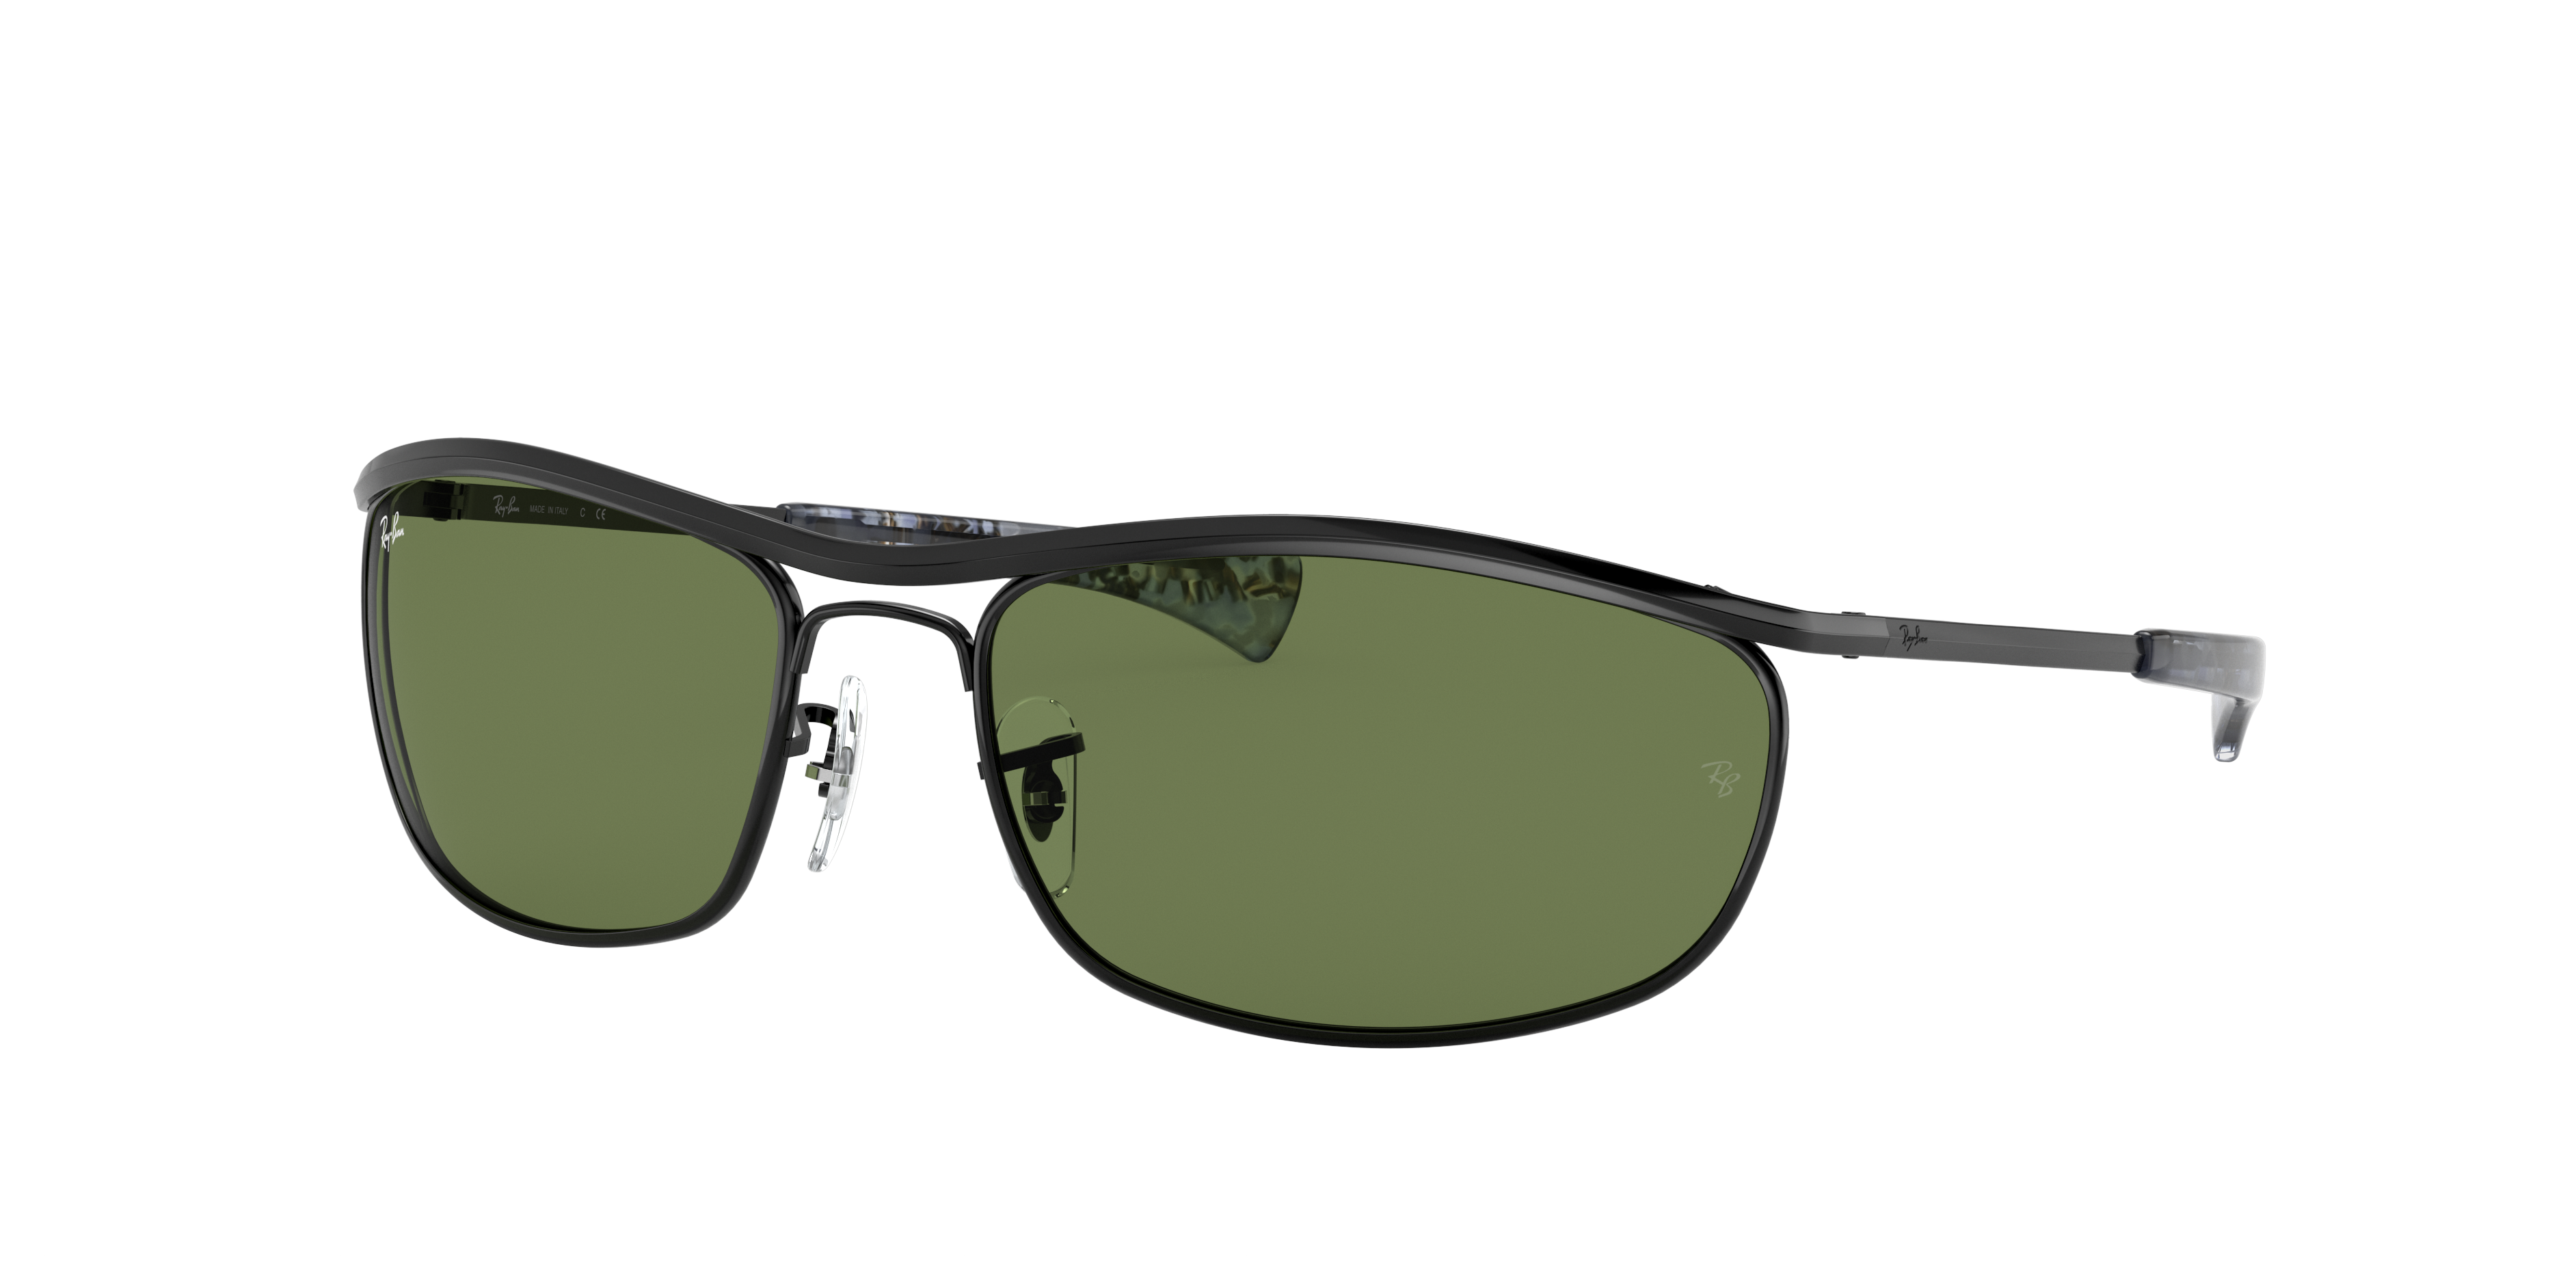 Ray-Ban Olympian I Deluxe Black, Green Lenses - RB3119M